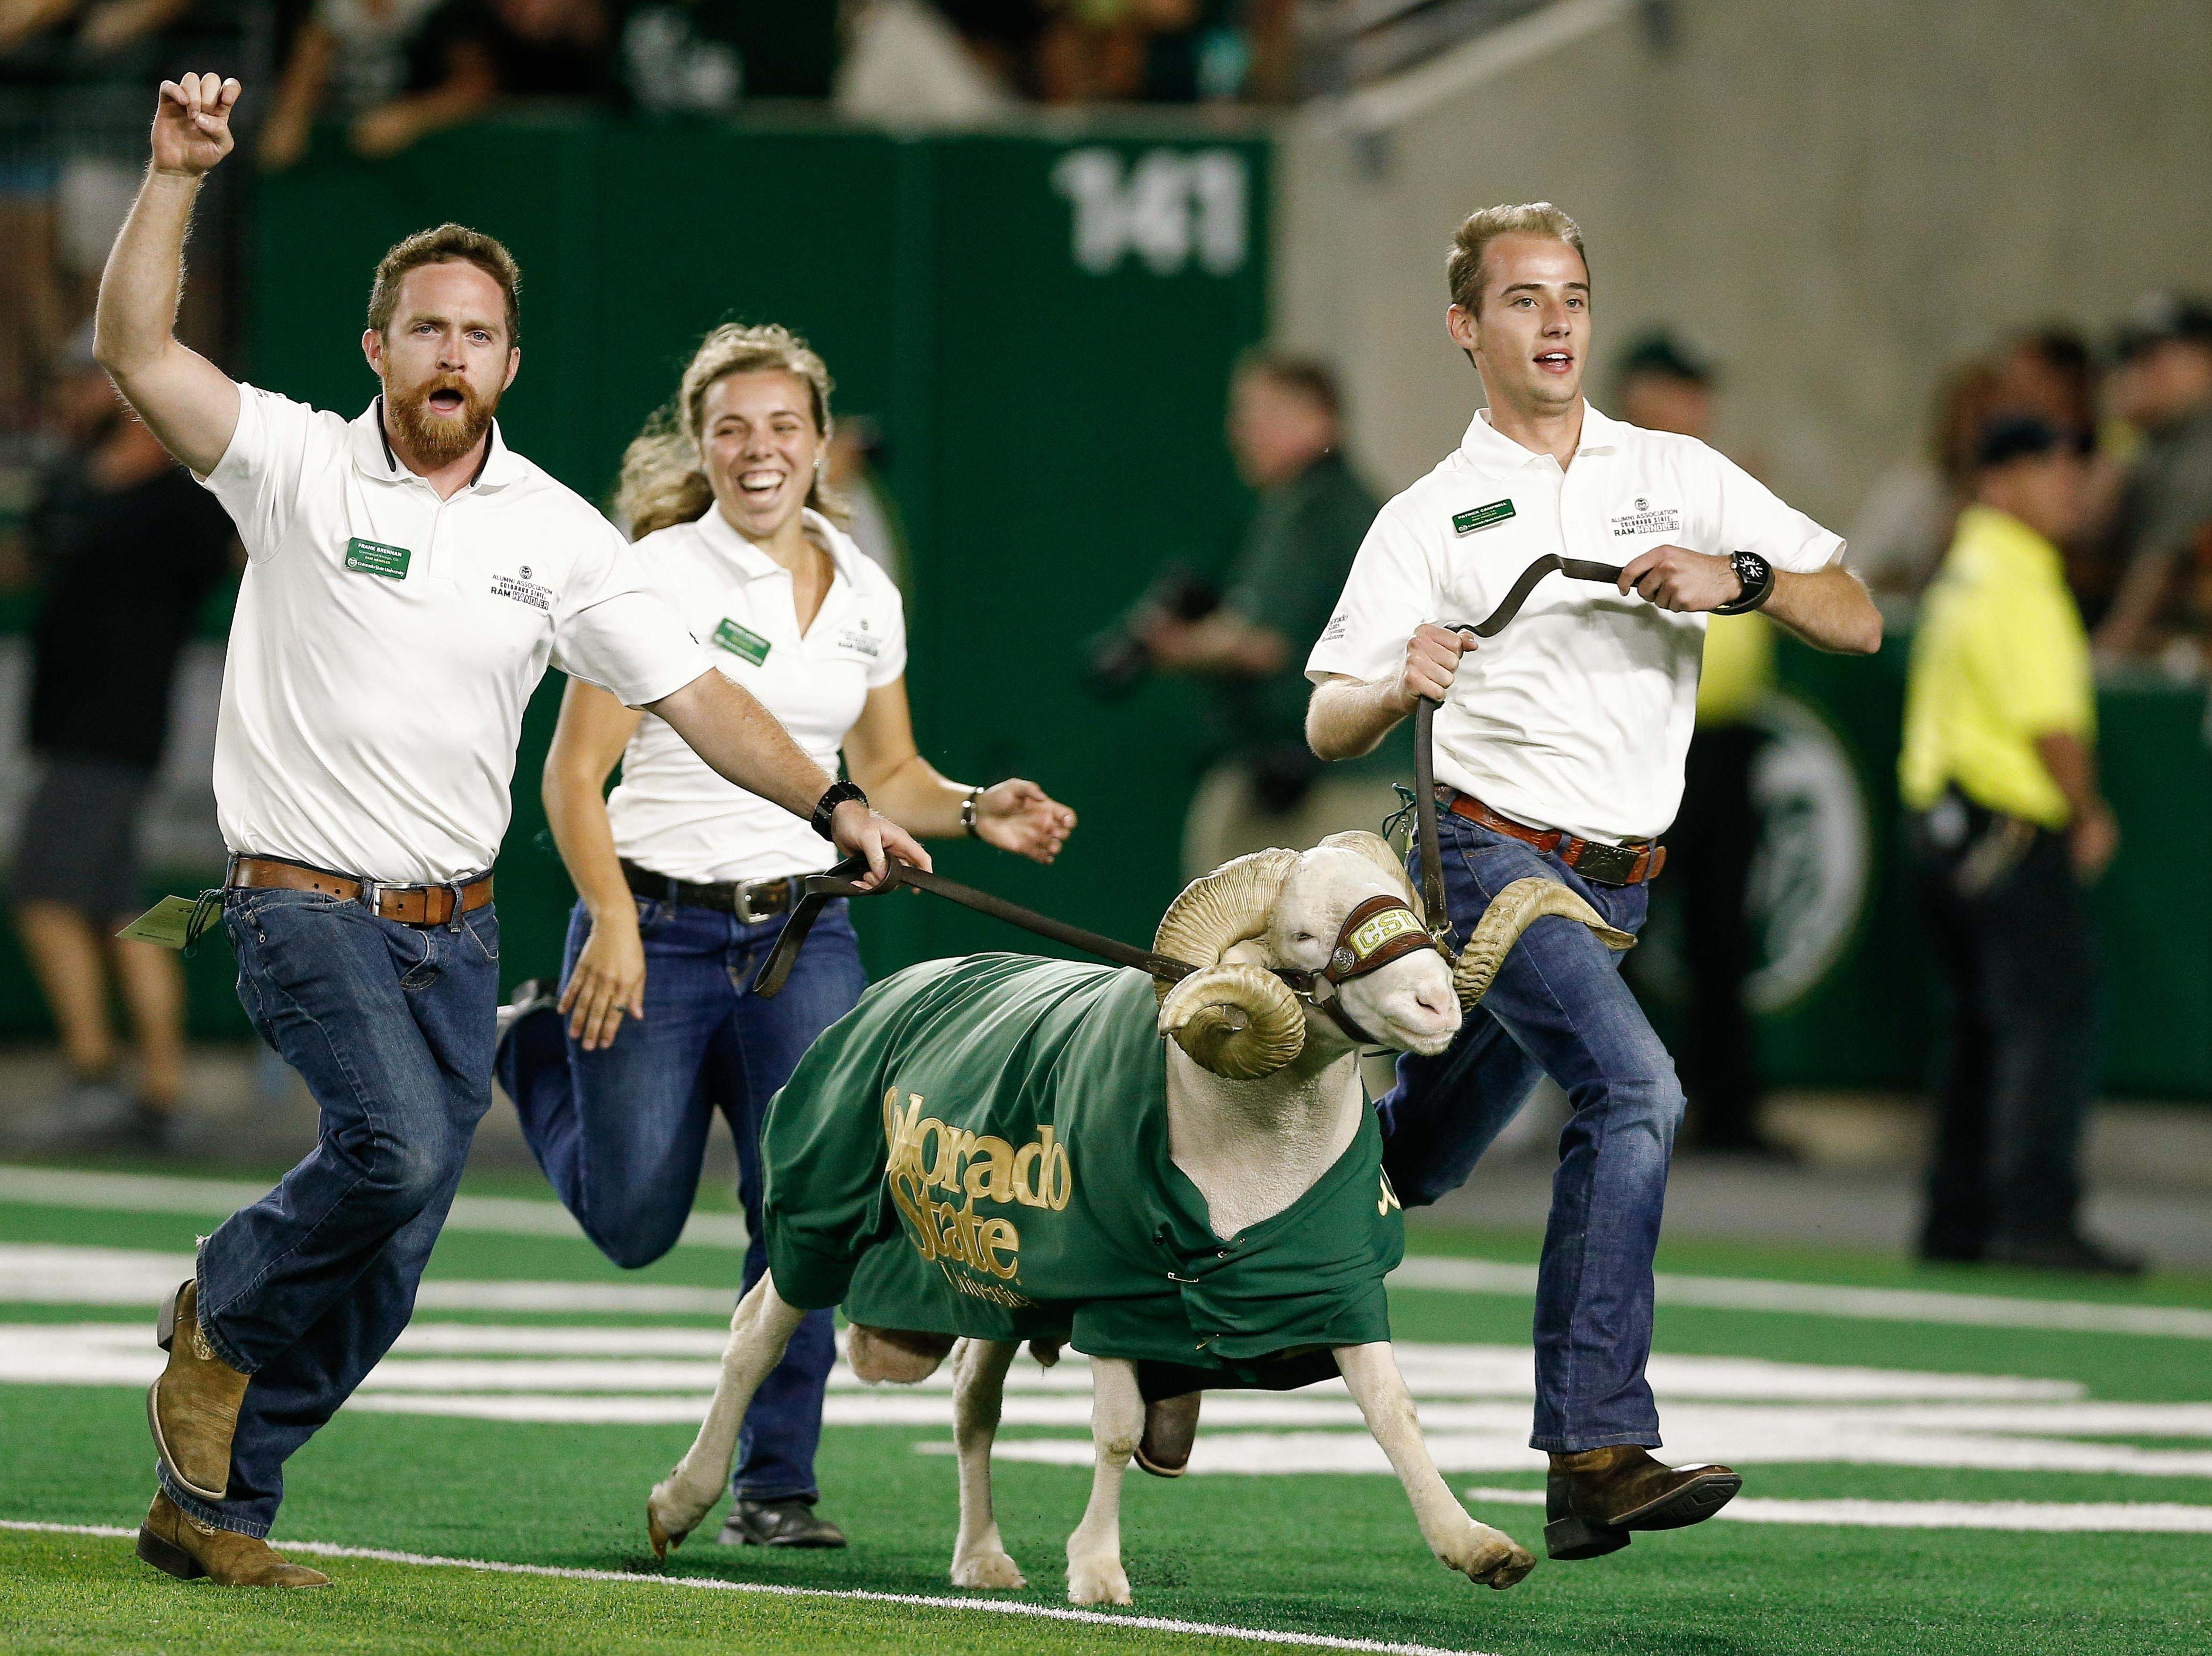 Week 2: Handlers run CAM the RAM after a touchdown in the fourth quarter against the Arkansas Razorbacks.